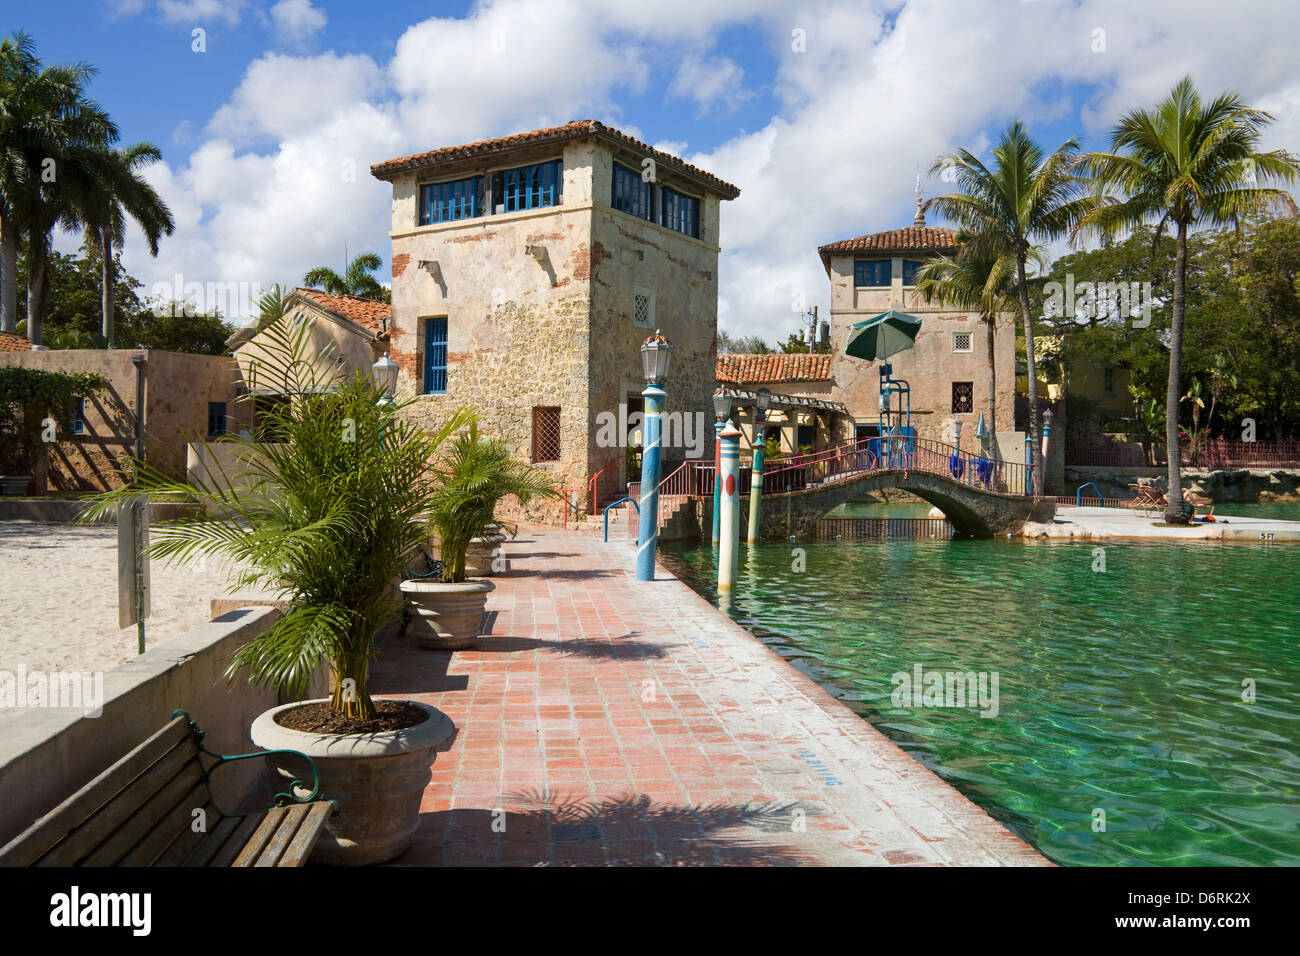 Venetian Pool, Coral Gables, Miami, Florida, USA - Stock Image